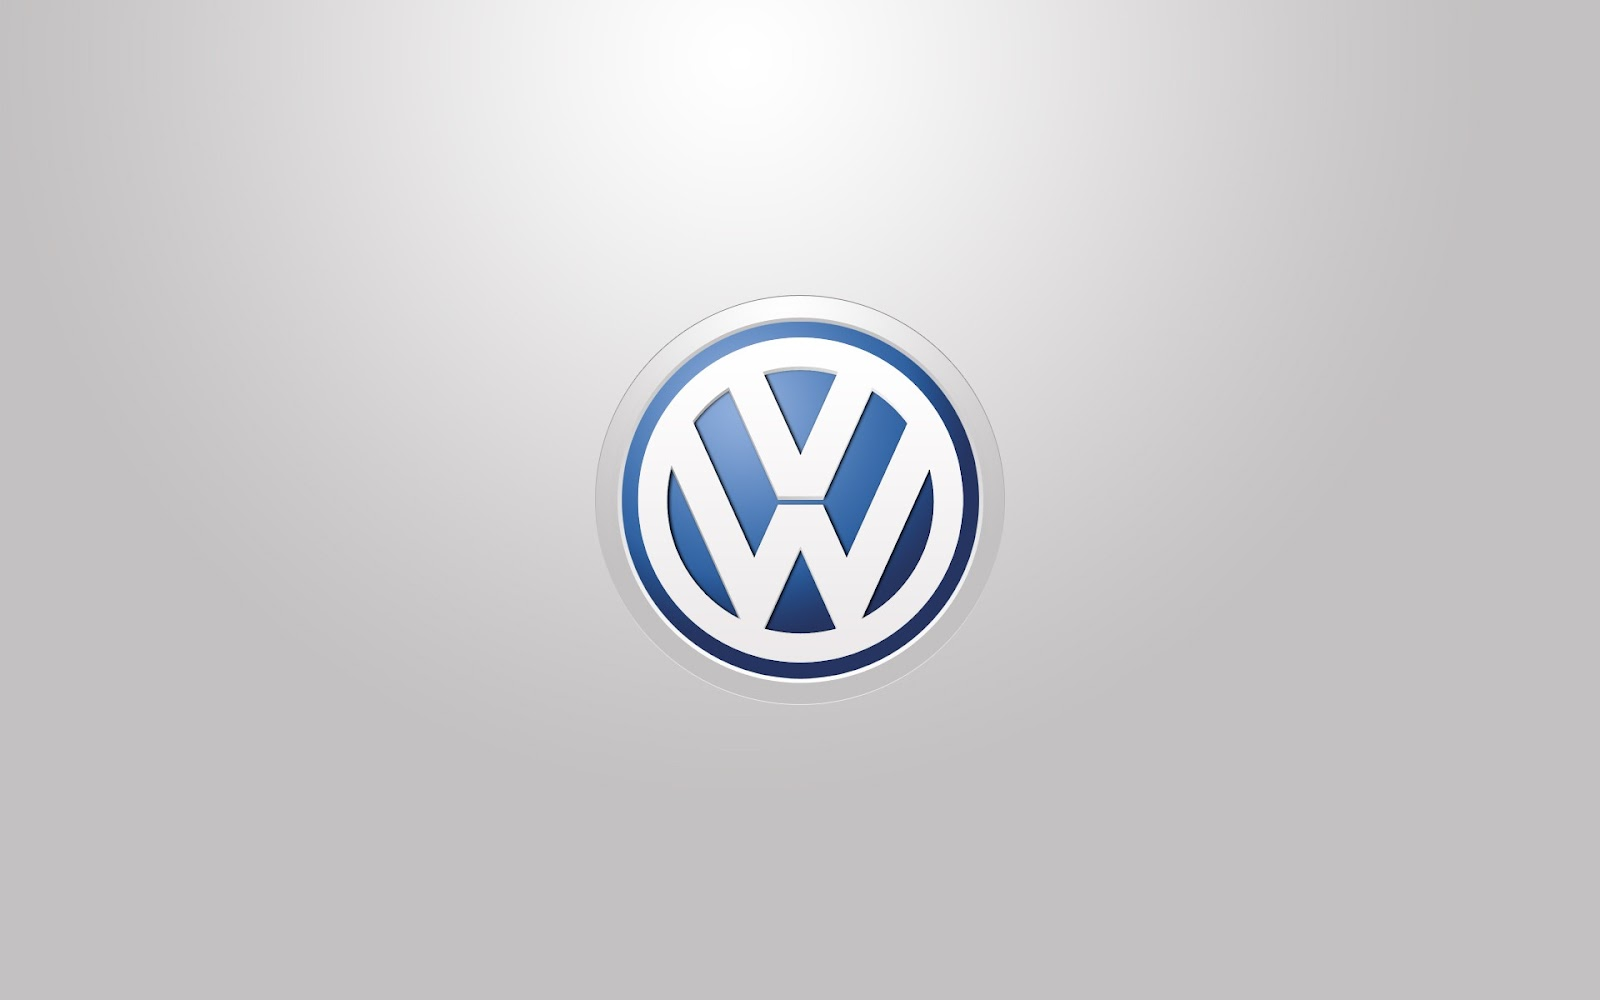 volkswagen vw logo wallpaper free download #812 wallpaper